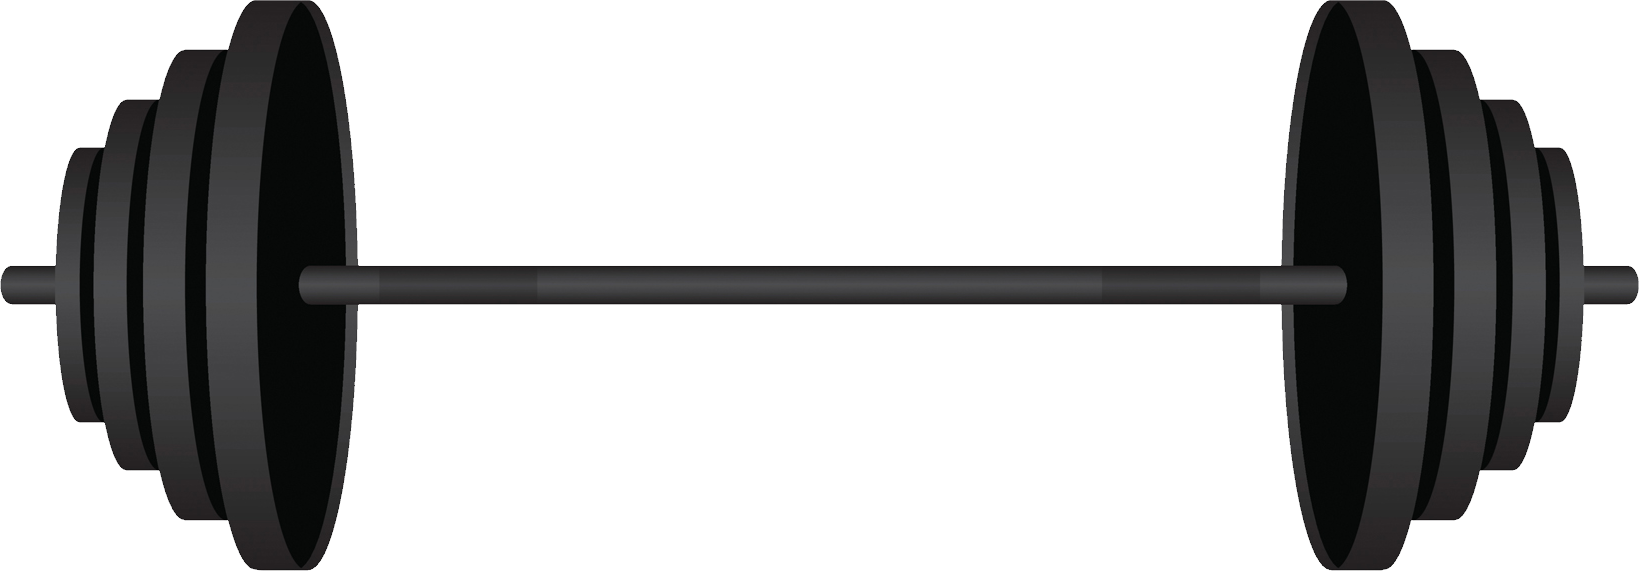 Barbell Barbell Png Images Png